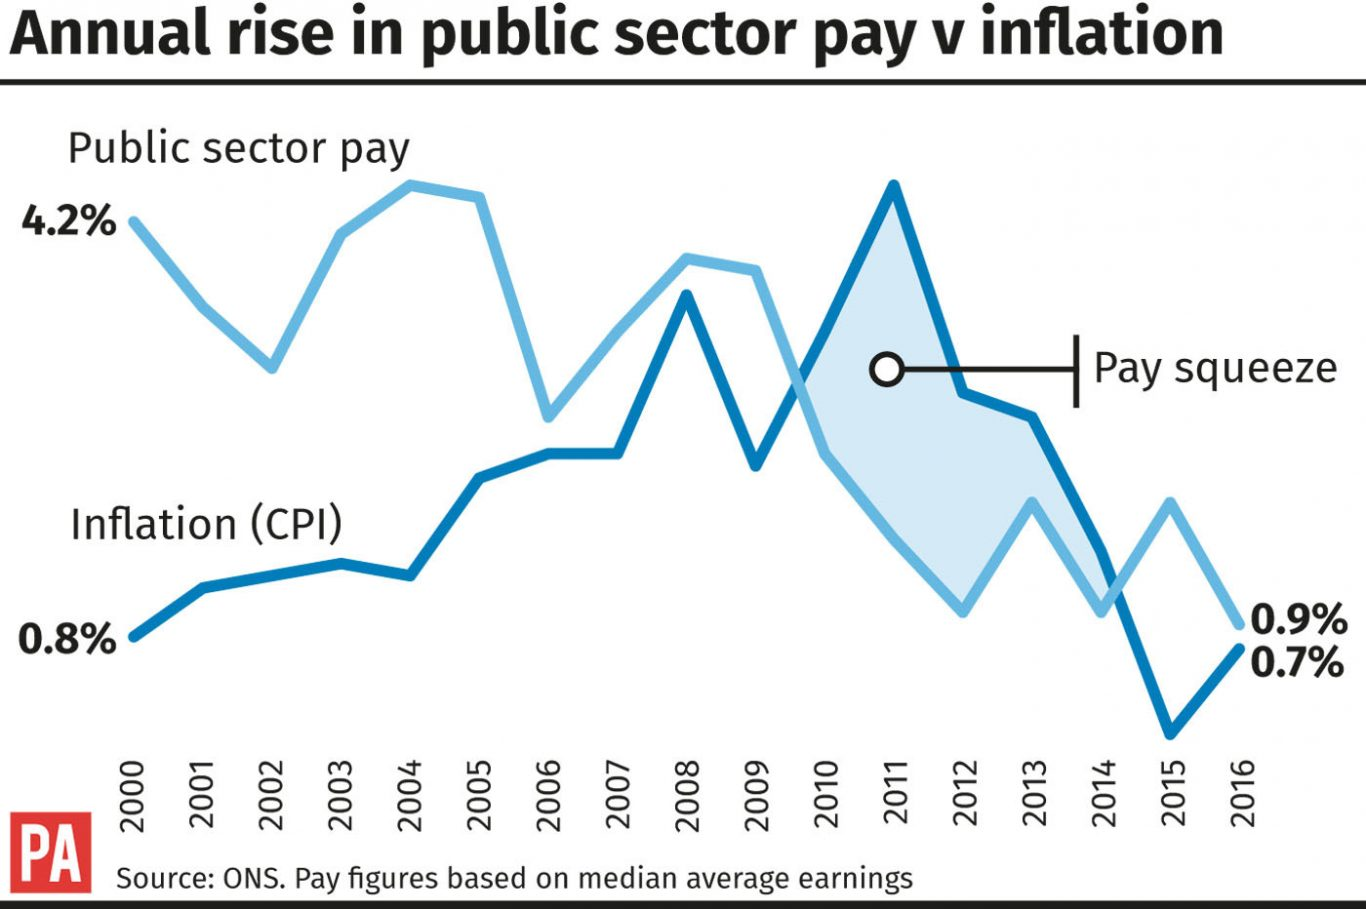 Annual rise in public sector pay v inflation